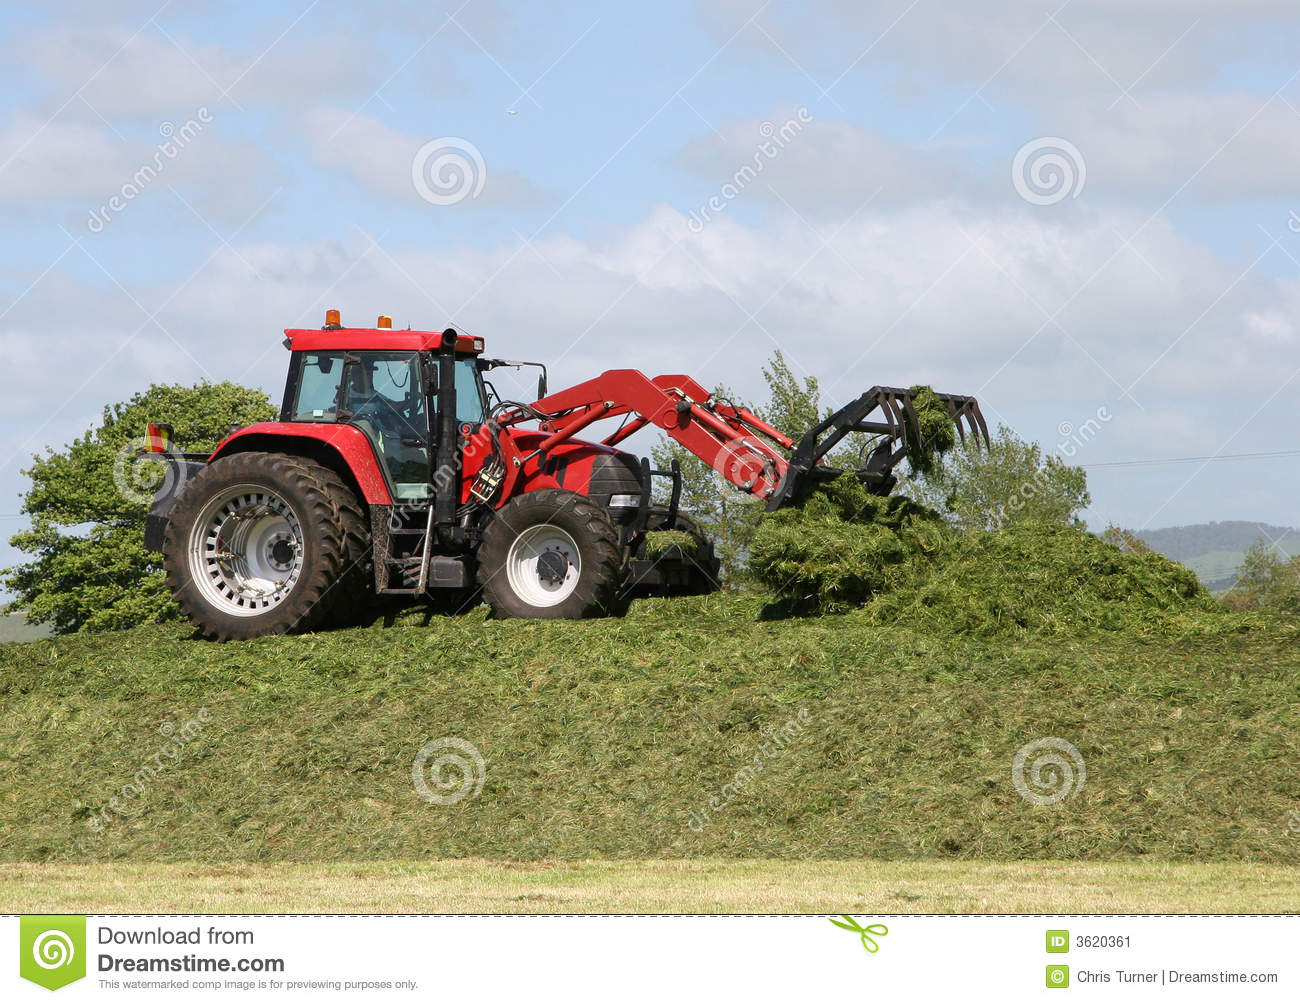 Farmer On Tractor : Farmer on tractor packing down silage stack stock image